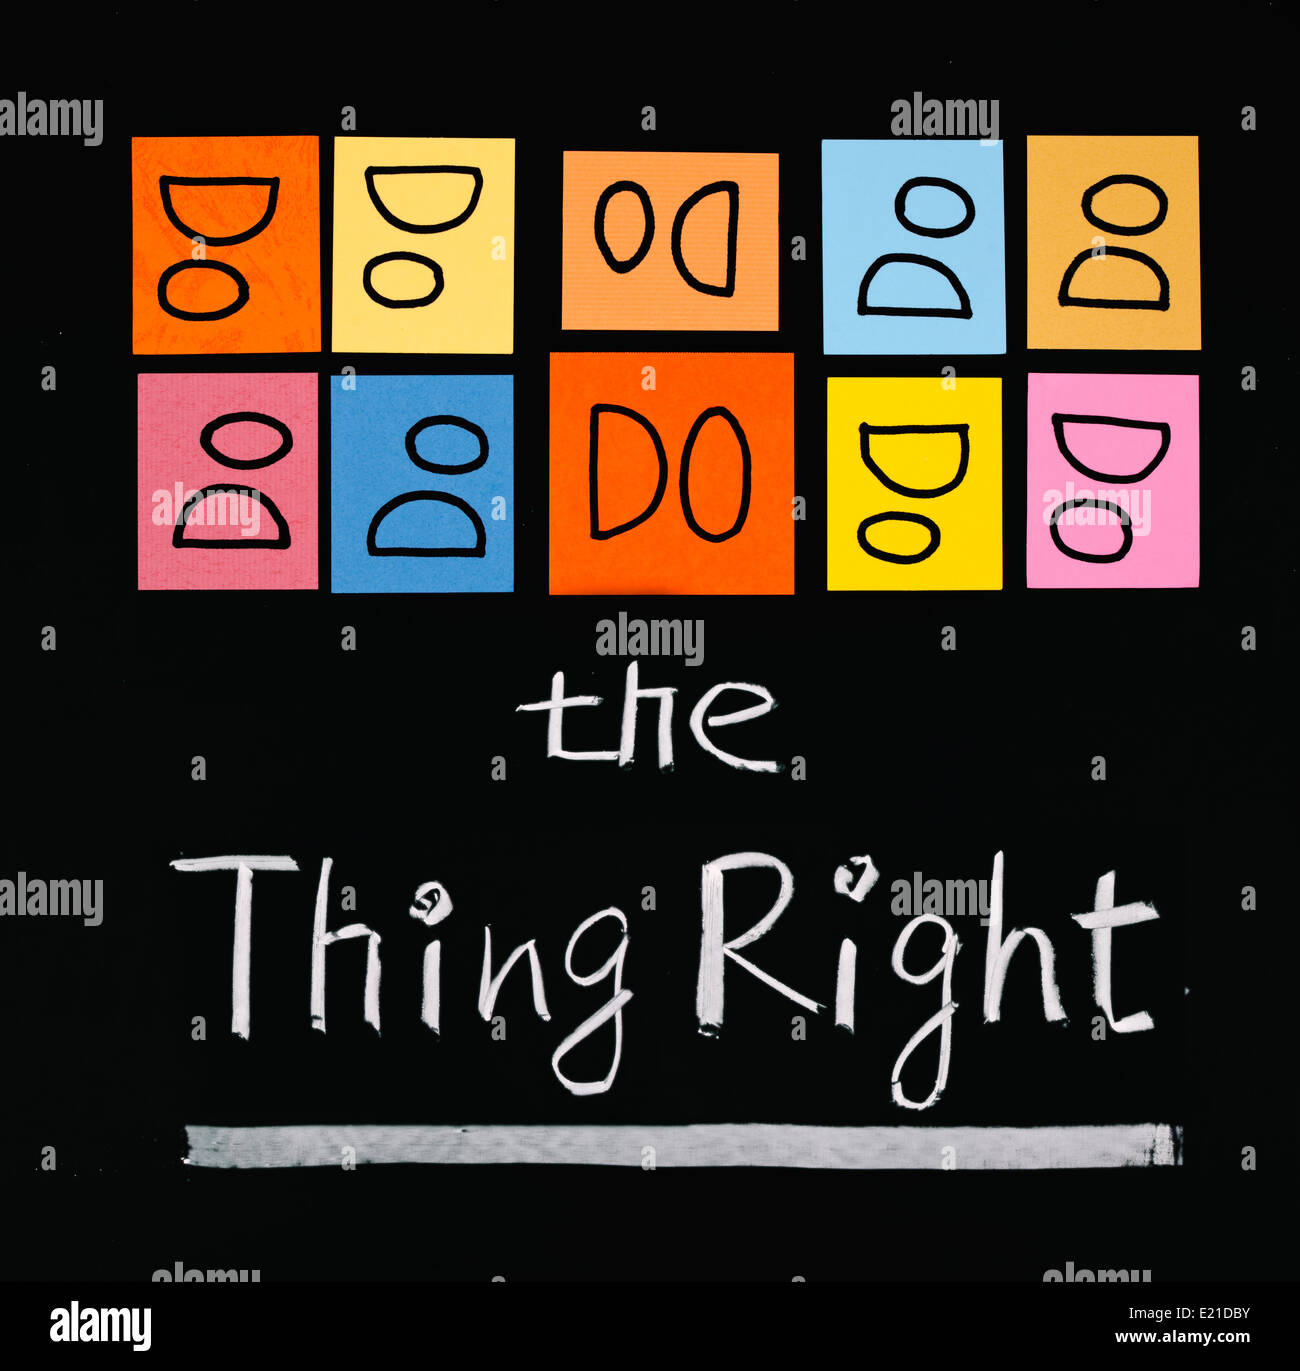 Do the thing right, words on blackboard. - Stock Image